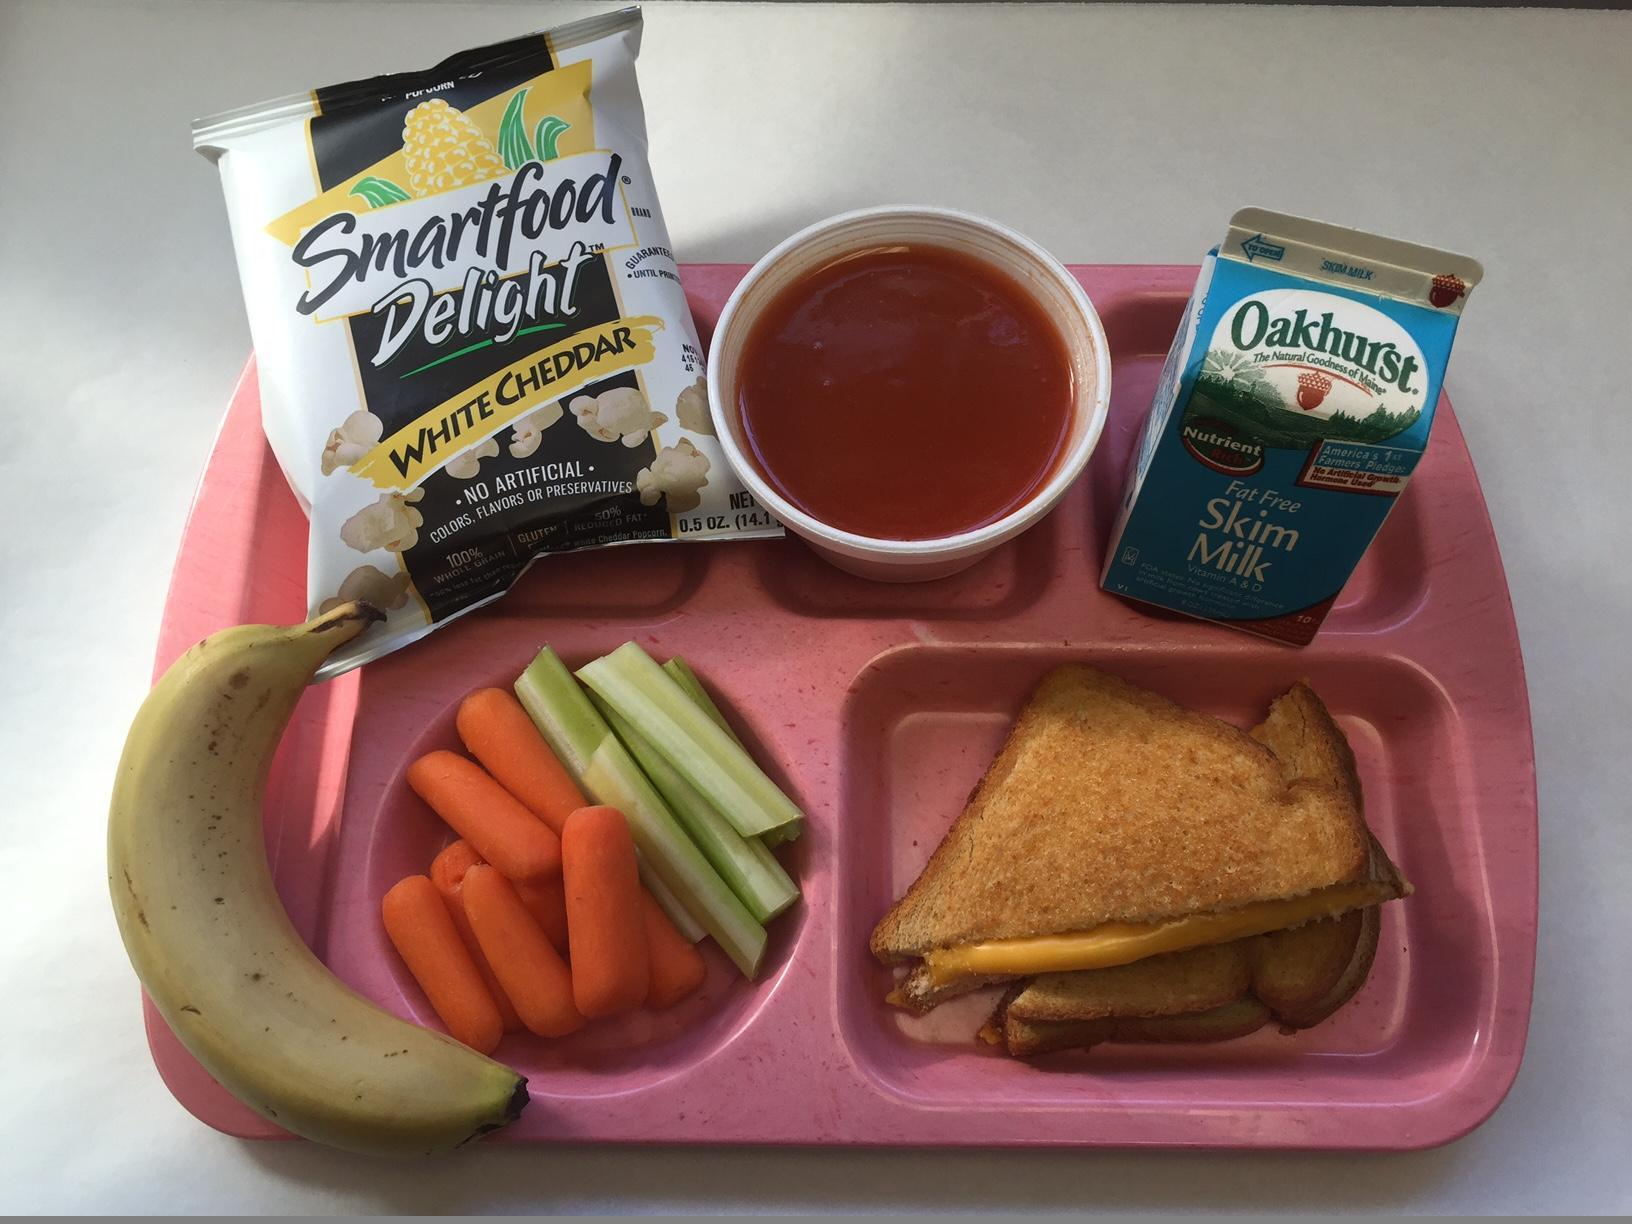 Toasted Cheese Sandwich, Tomato Soup, Veggie Sticks, Smartfood Popcorn, Banana and Milk